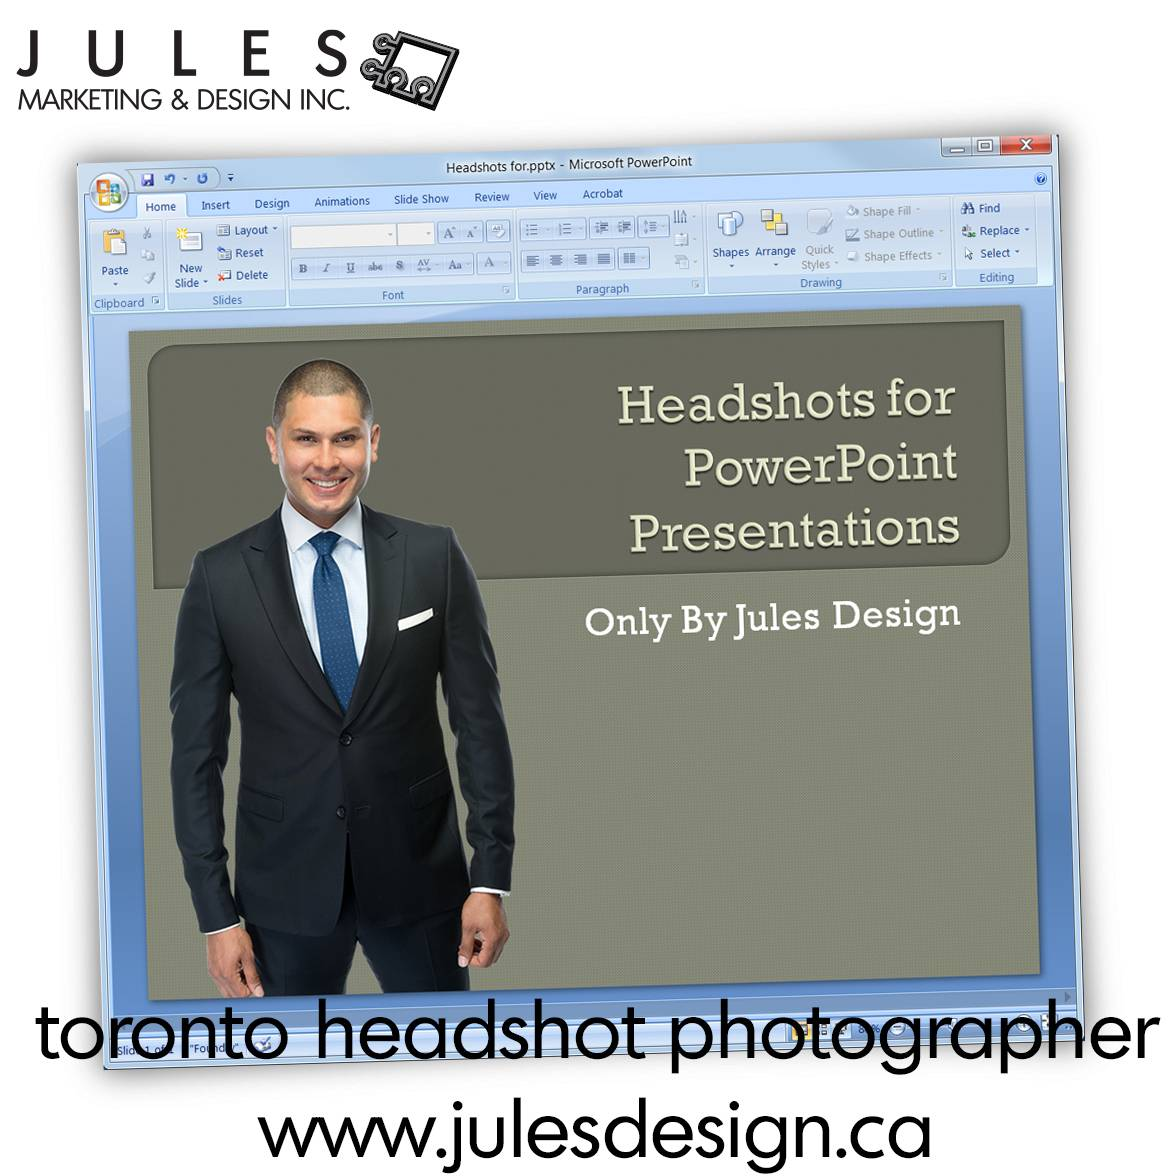 A Headshot for a PowerPoint Presentation